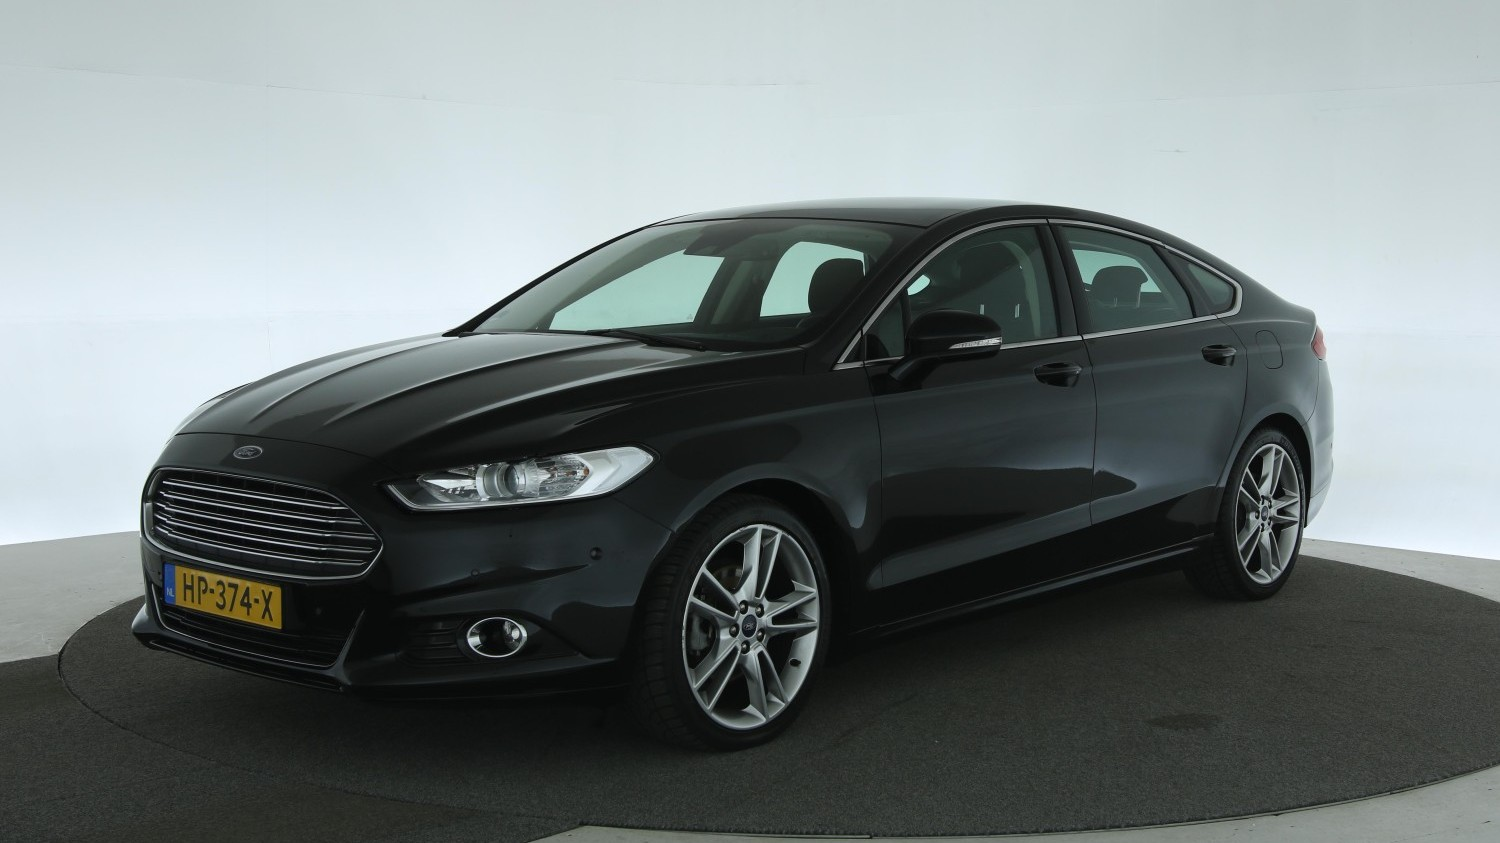 Ford Mondeo Hatchback 2015 HP-374-X 1